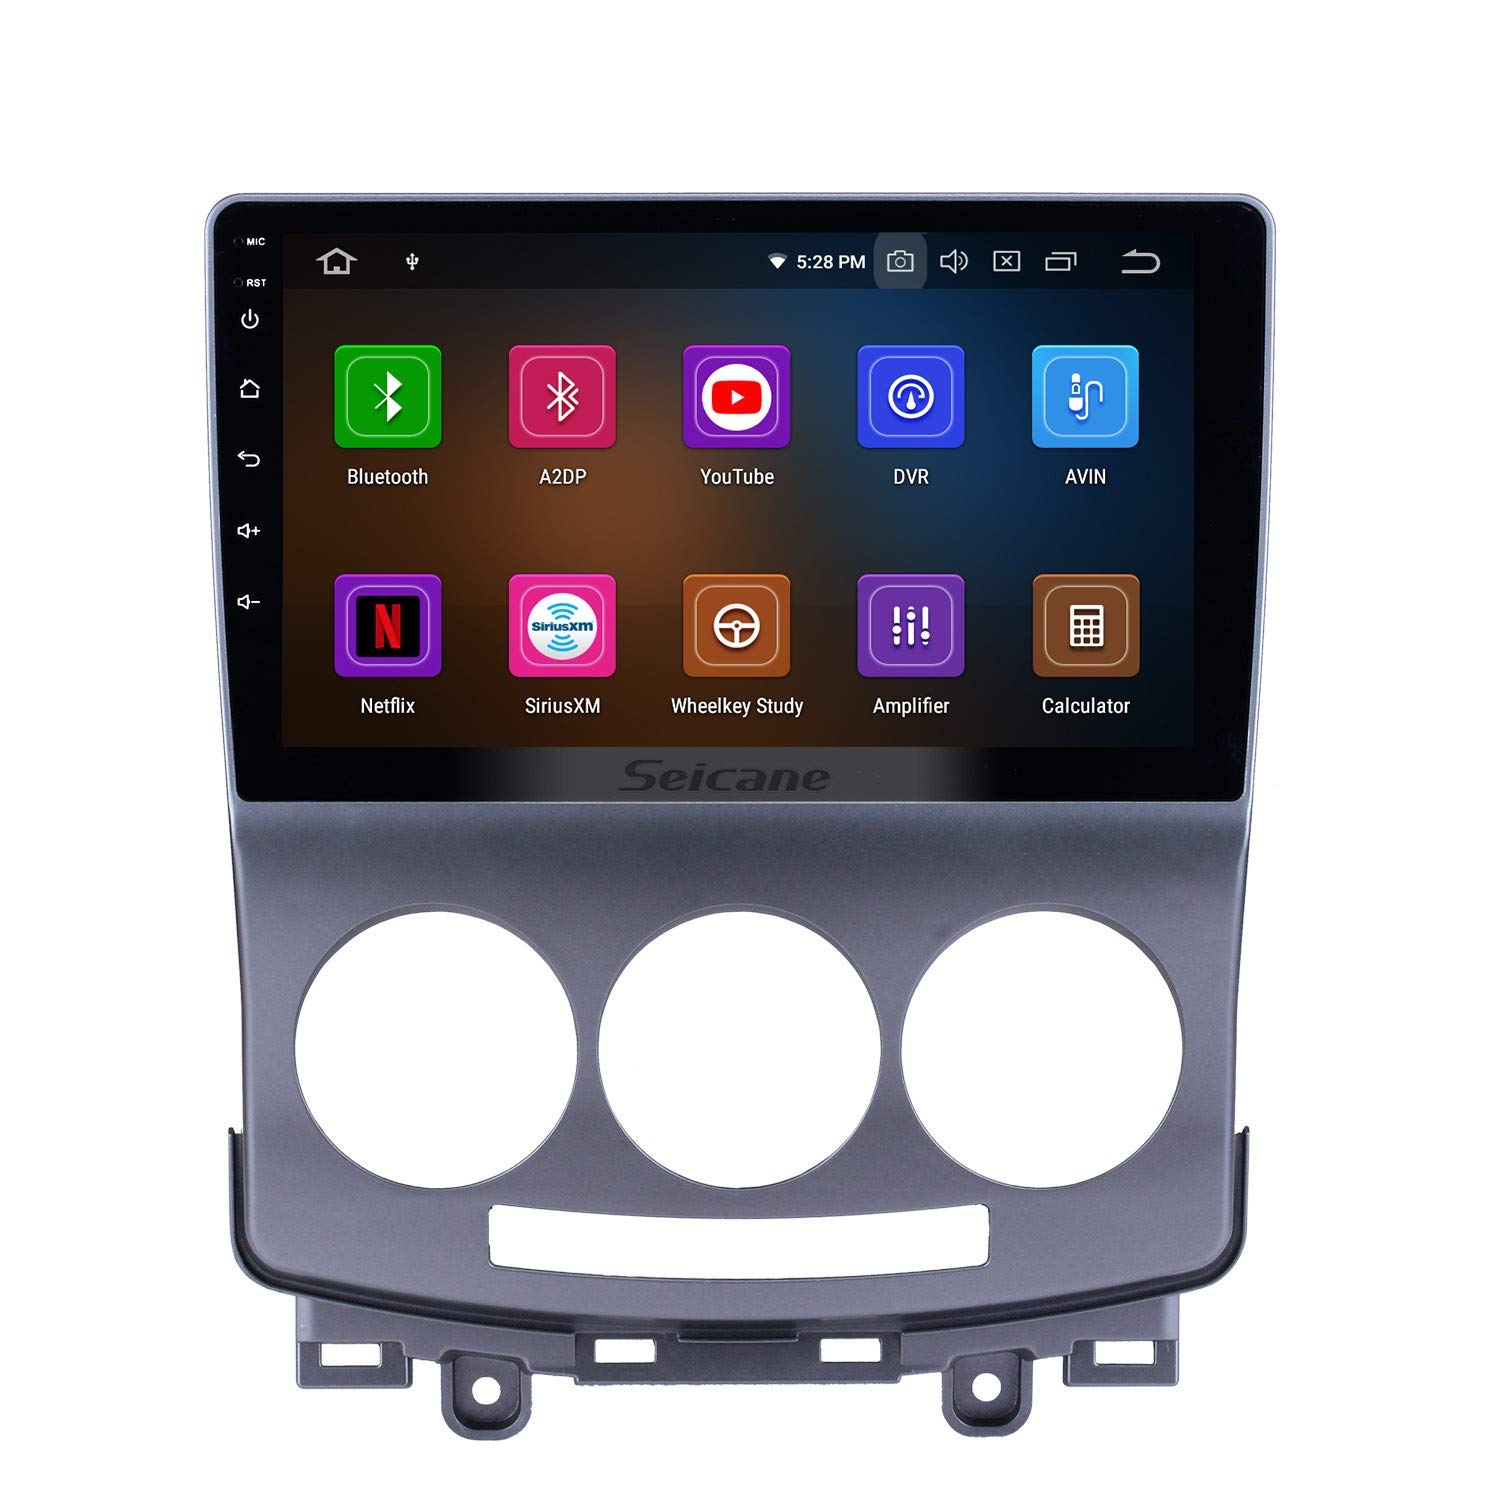 9 inch Android 9.0 Touchscreen GPS Navi Stereo for Mazda 5 2005-2010 car with WiFi Bluetooth Music USB Support DAB SWC DVR 8-Core,4G+32G